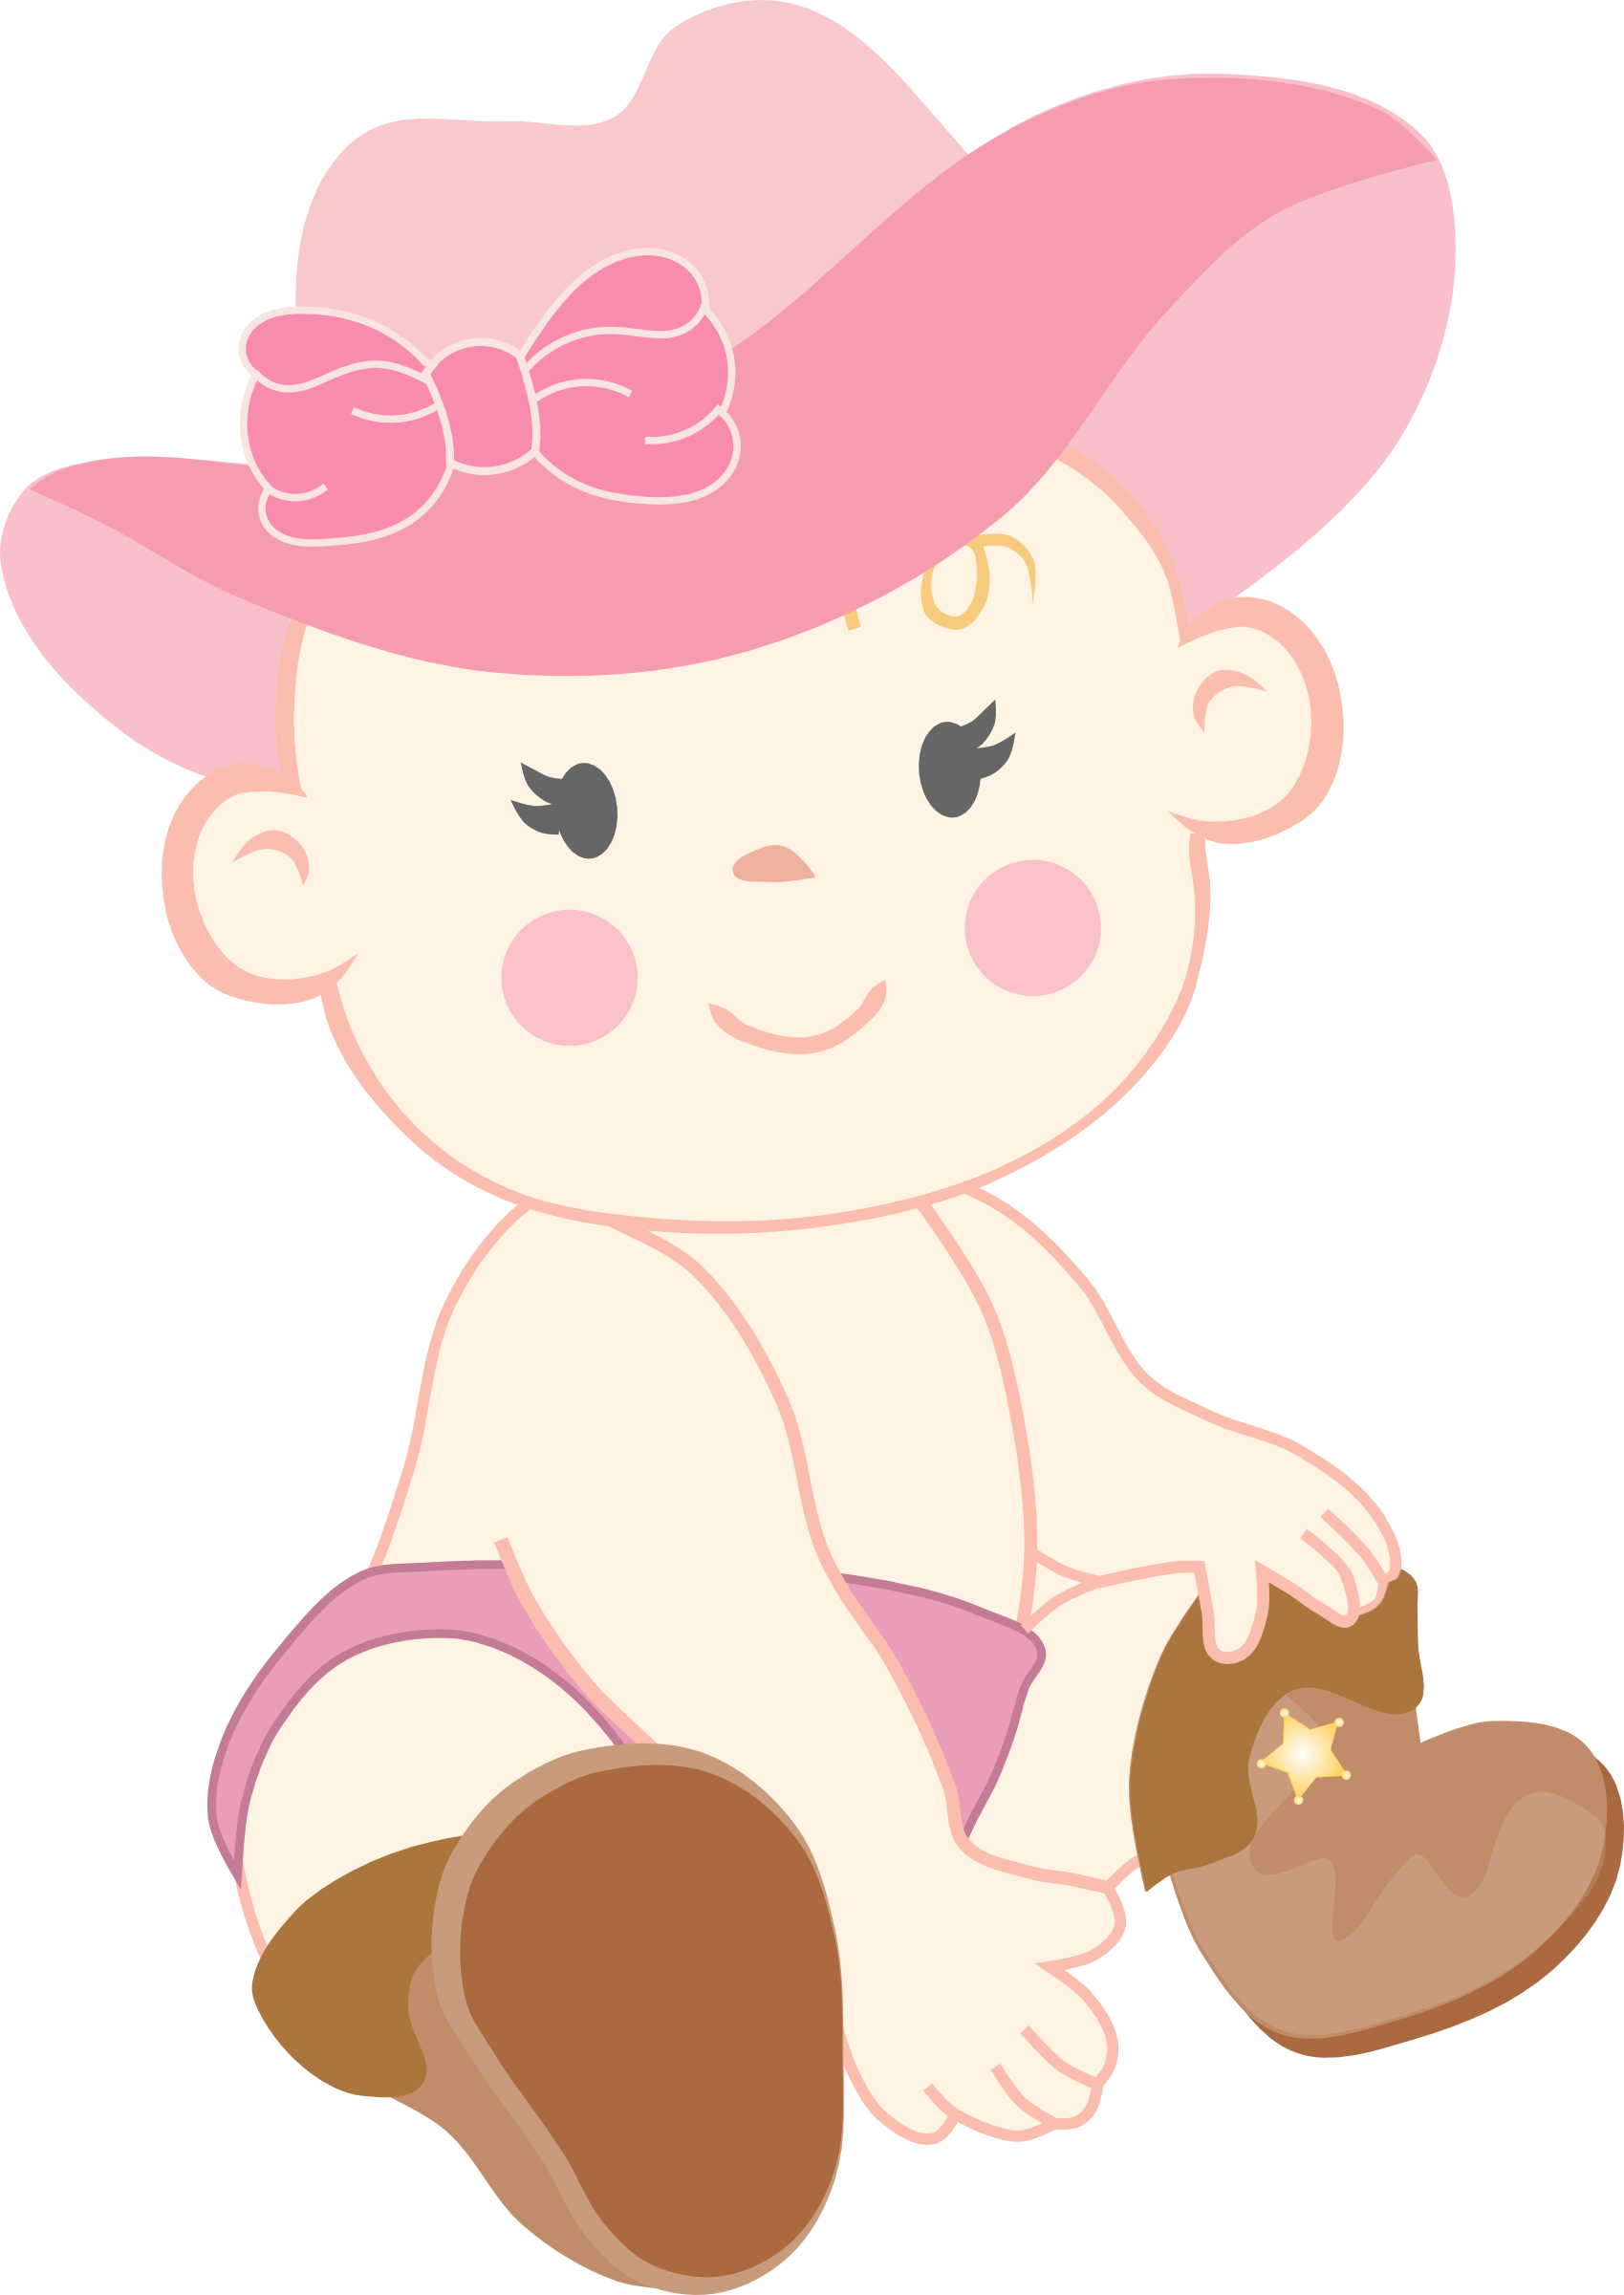 Cowgirl clipart baby shower Pinterest Baby Bebé Cowgirl Cowgirl